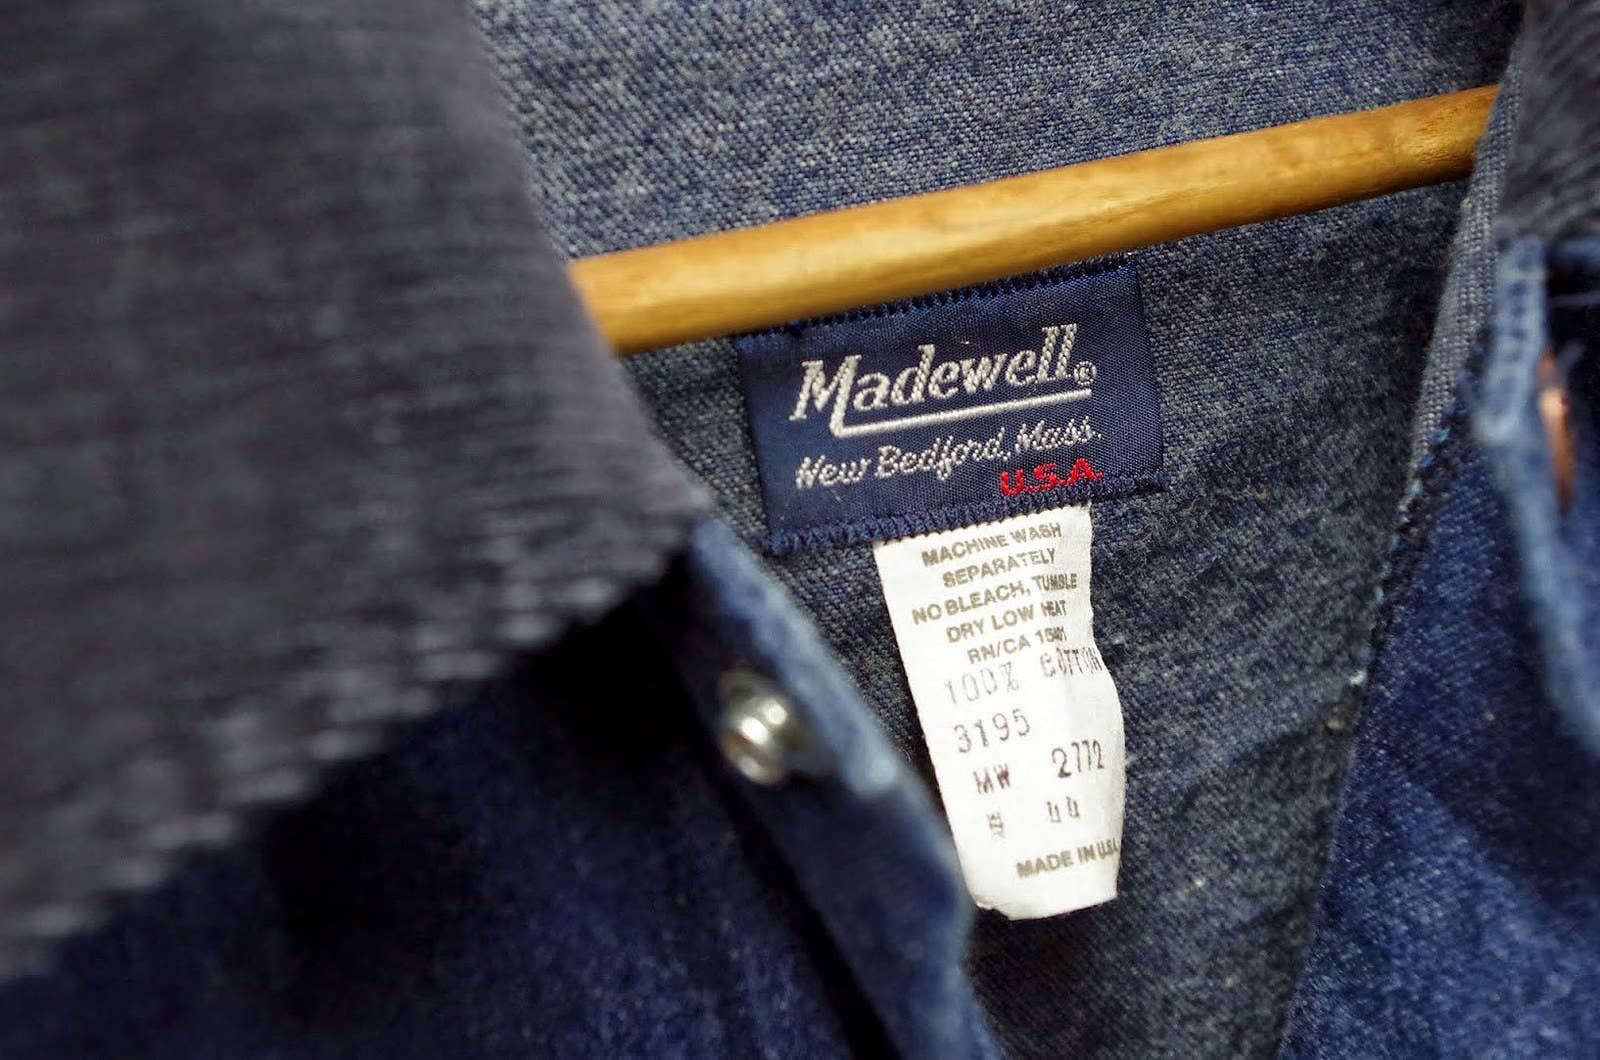 How Madewell Bought And Sold My Familys History Branded Gap Man Short Pants Original Share On Facebook